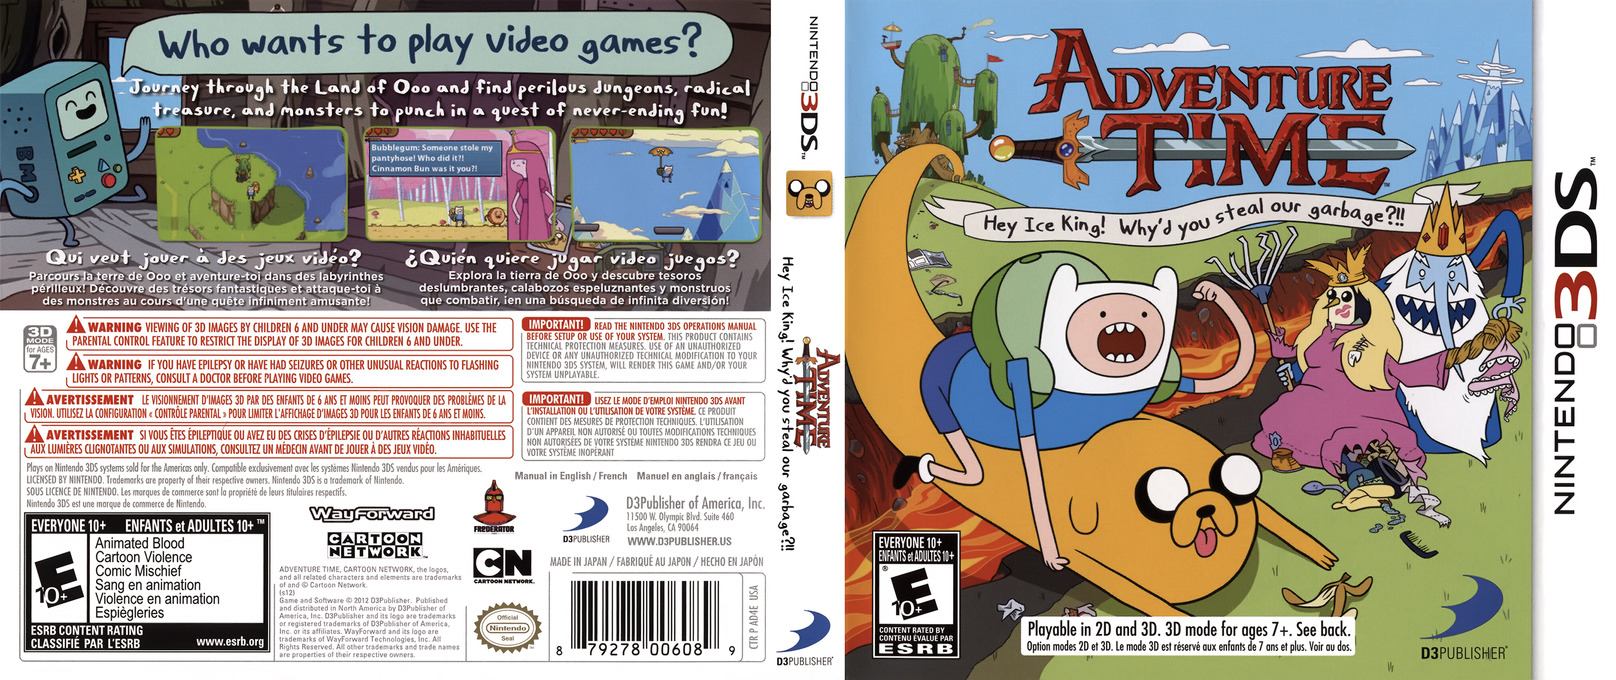 Adventure Time - Hey Ice King! Why'd You Steal Our Garbage!! 3DS coverfullHQ (AD4E)